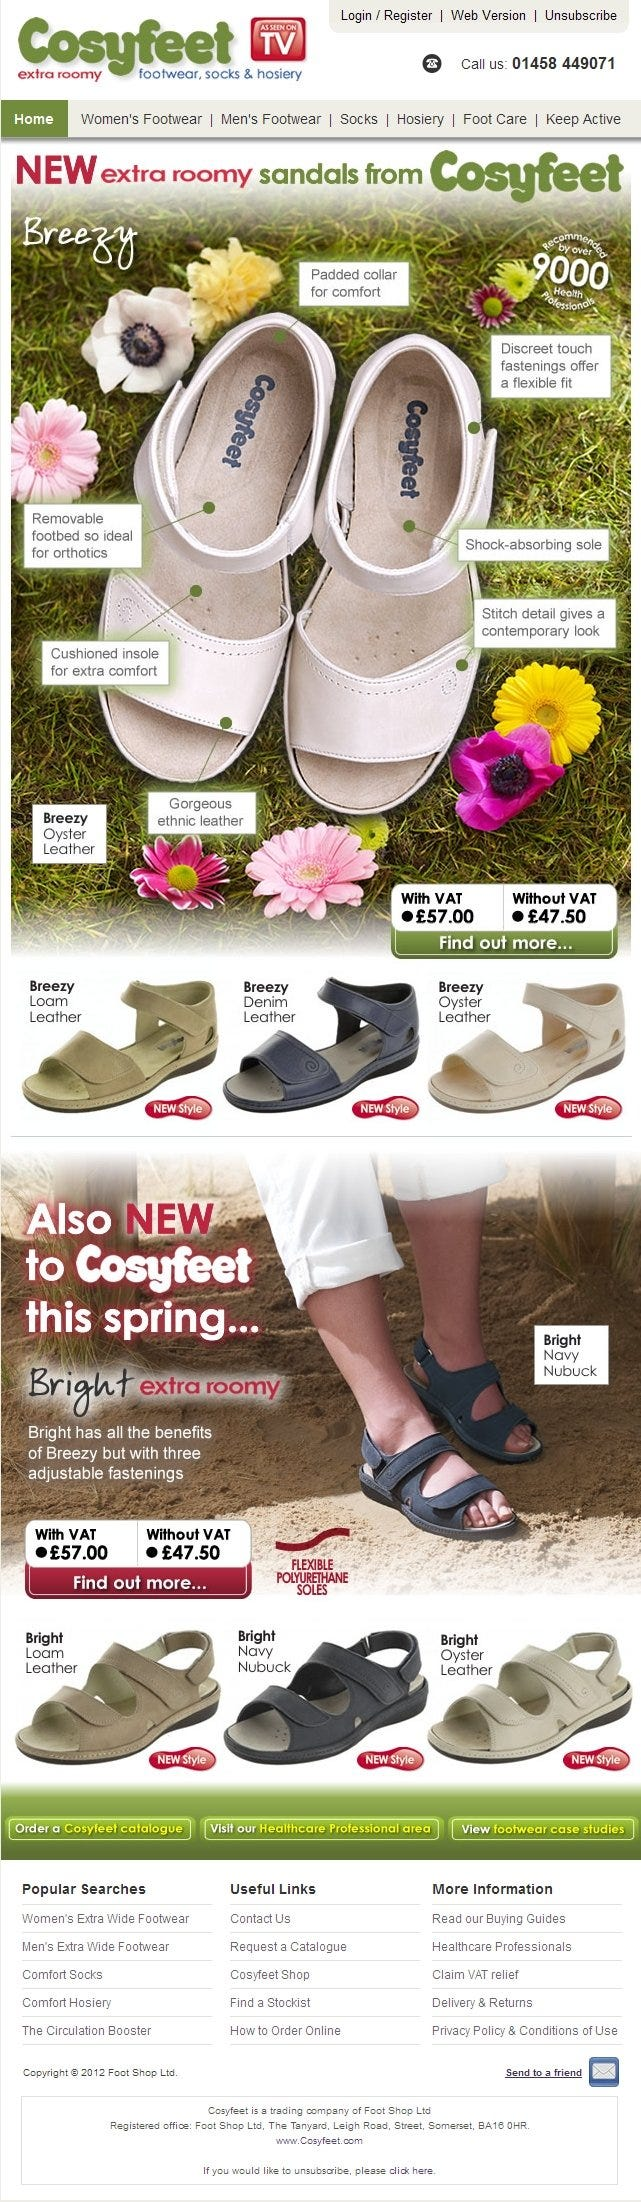 New extra roomy sandals from Cosyfeet